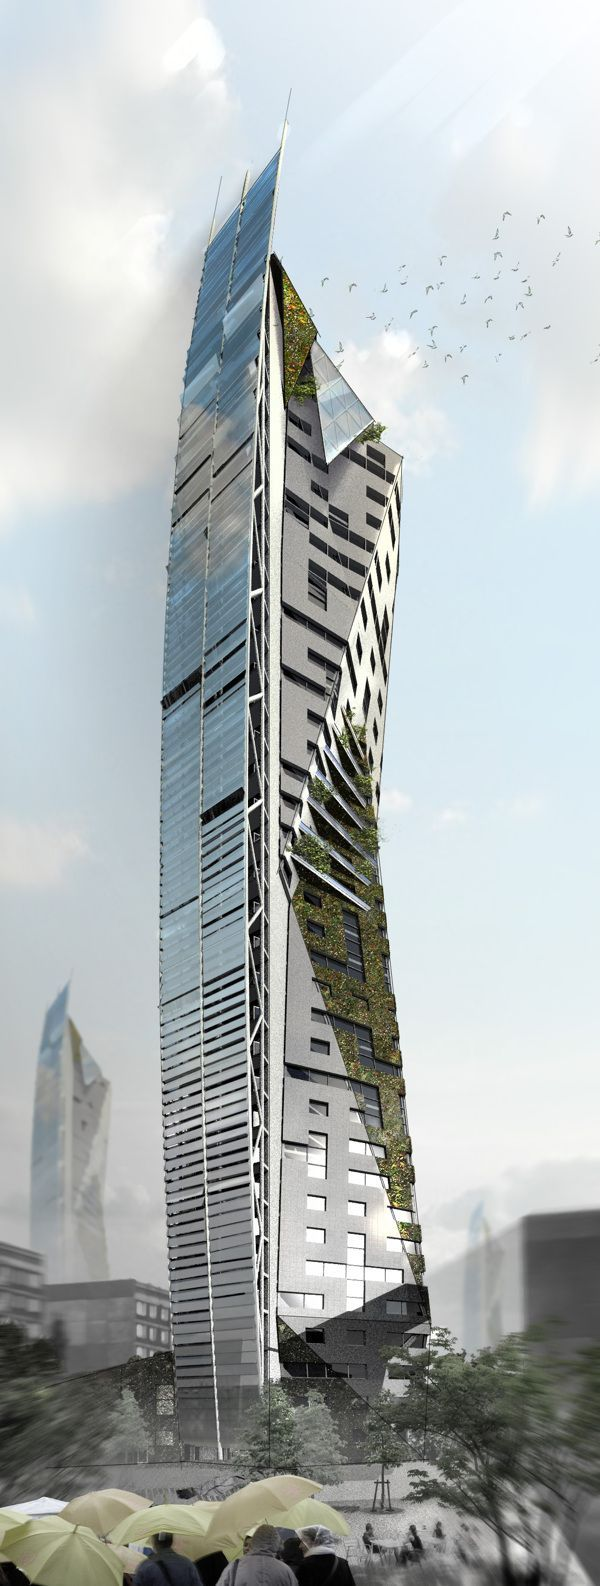 Eco Tower, Kiev, Ukraine by Pavlo Kryvozub